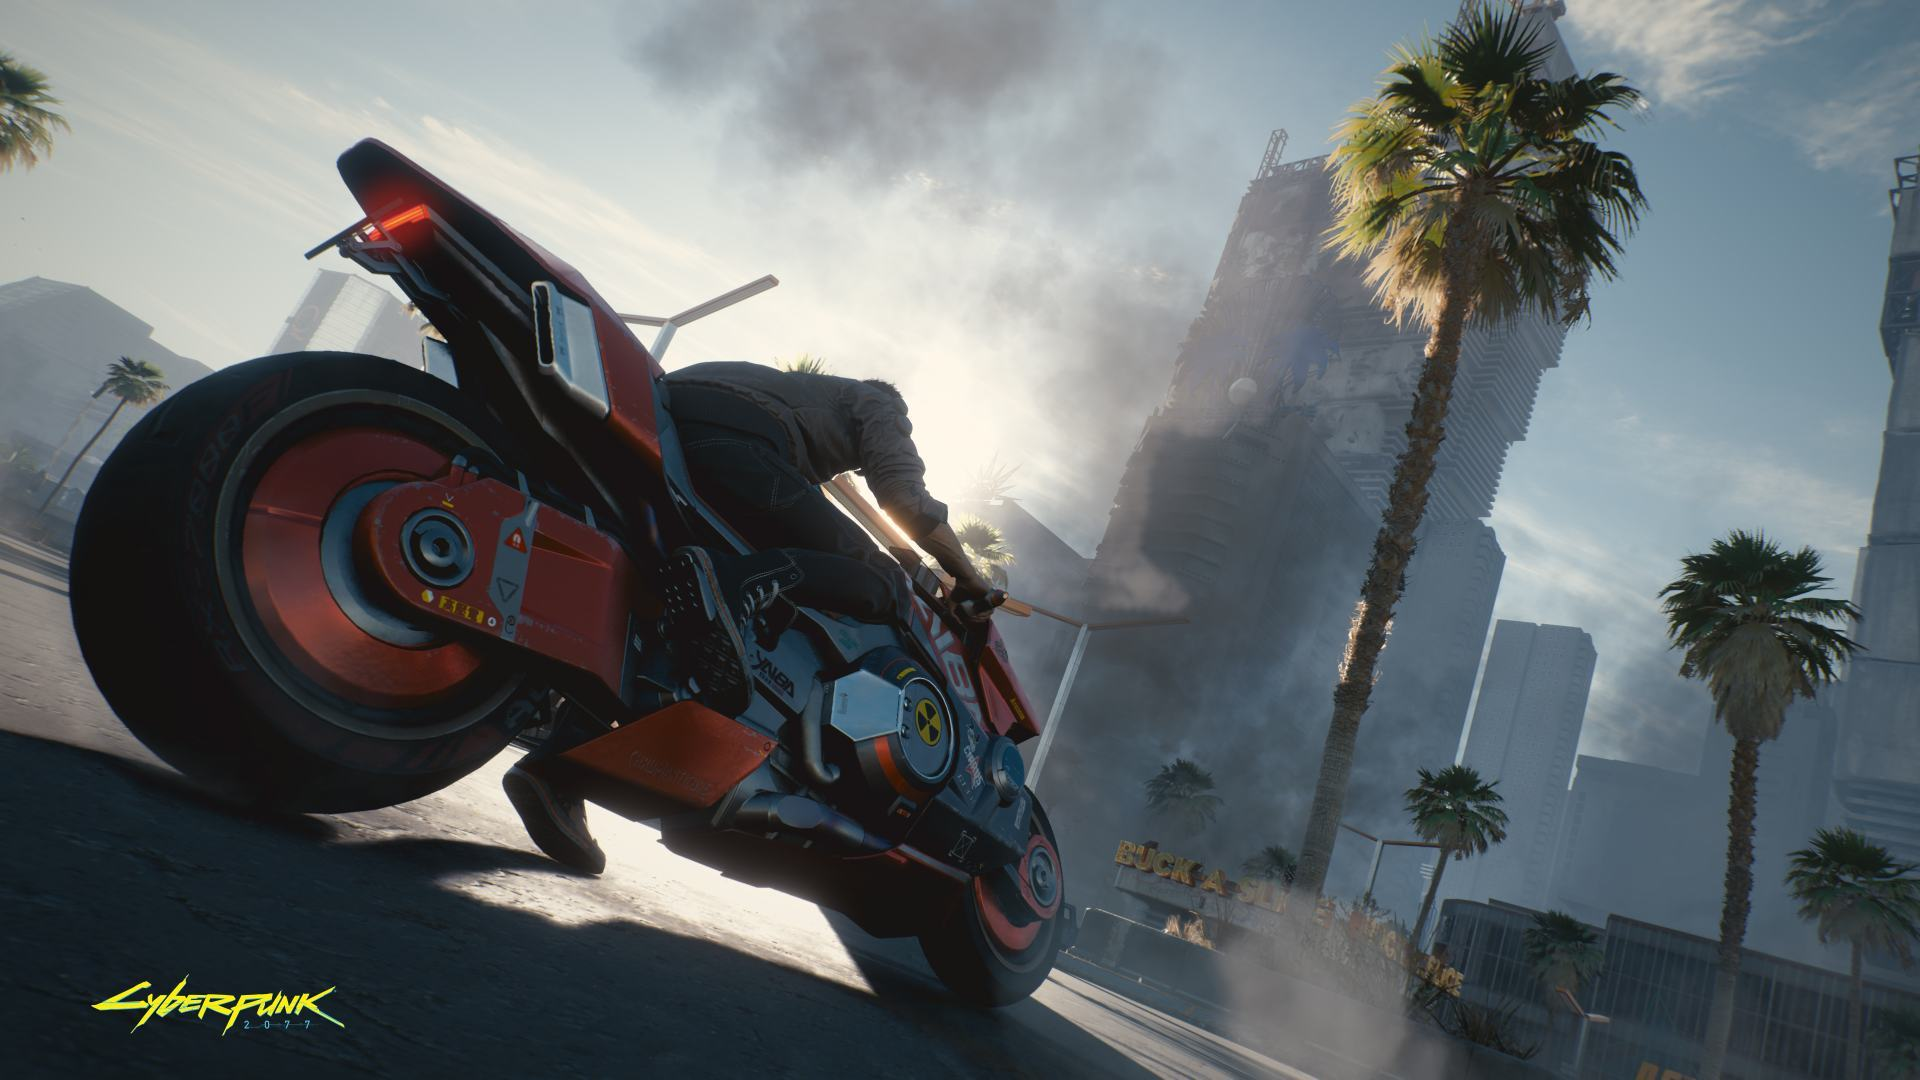 CD Projekt Red CEO Says Cyberpunk 2077's Multiplayer Will Be Its Own AAA Release